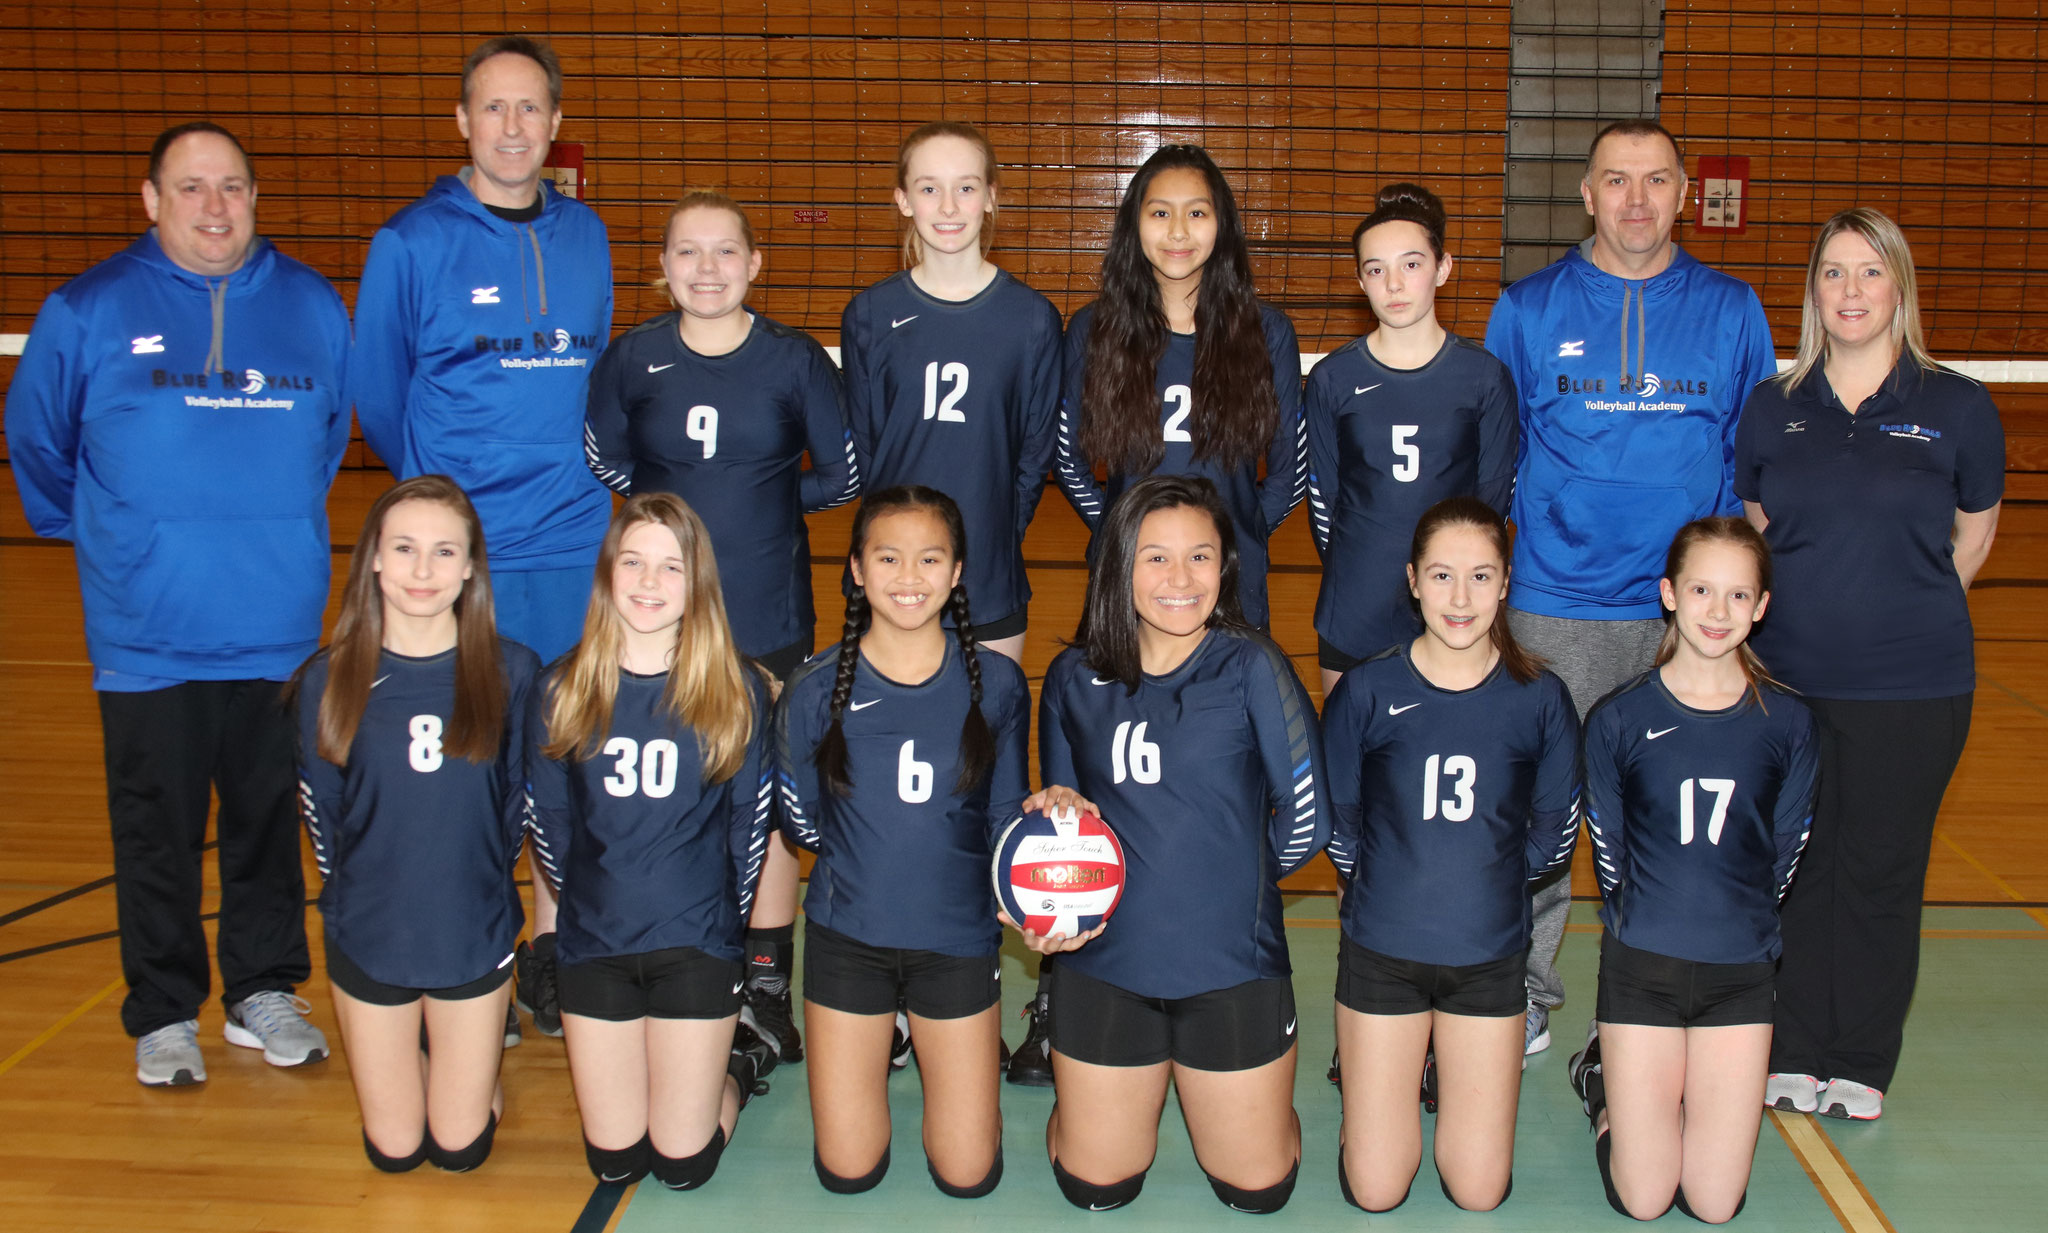 U14  National Team  - See Team Page for Individual Photos